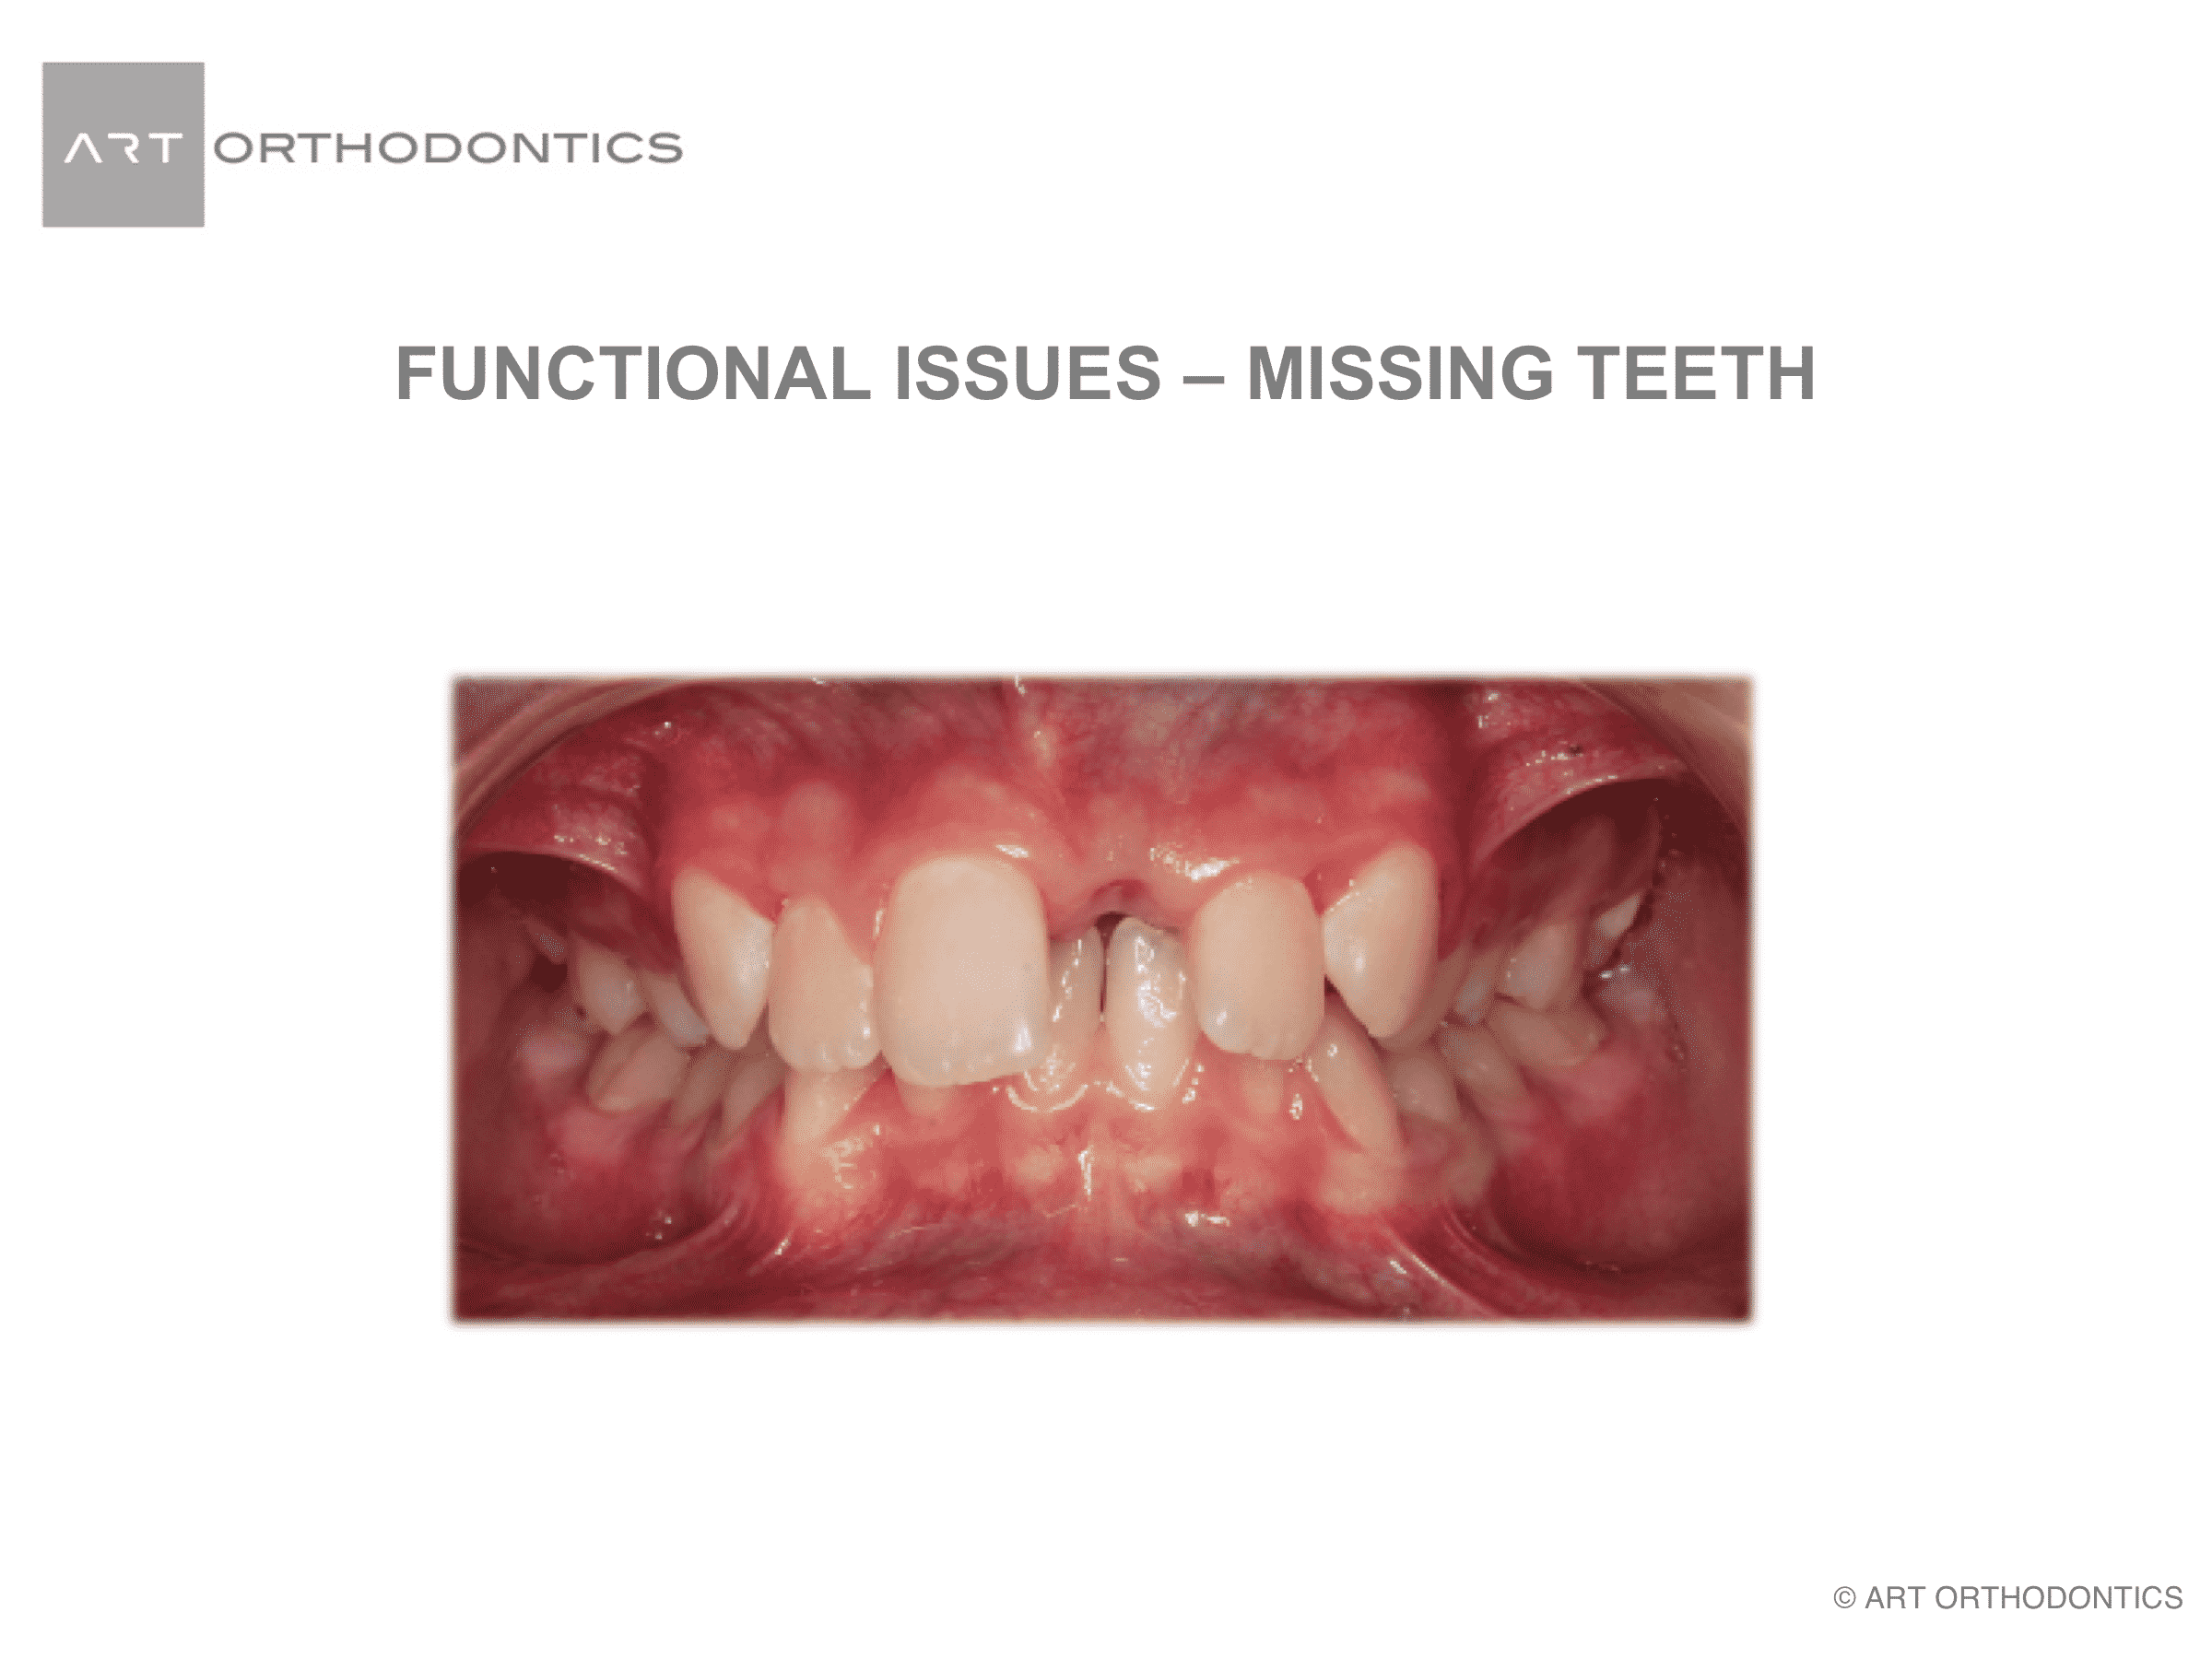 Missing upper left central incisor after trauma before orthodontic treatment